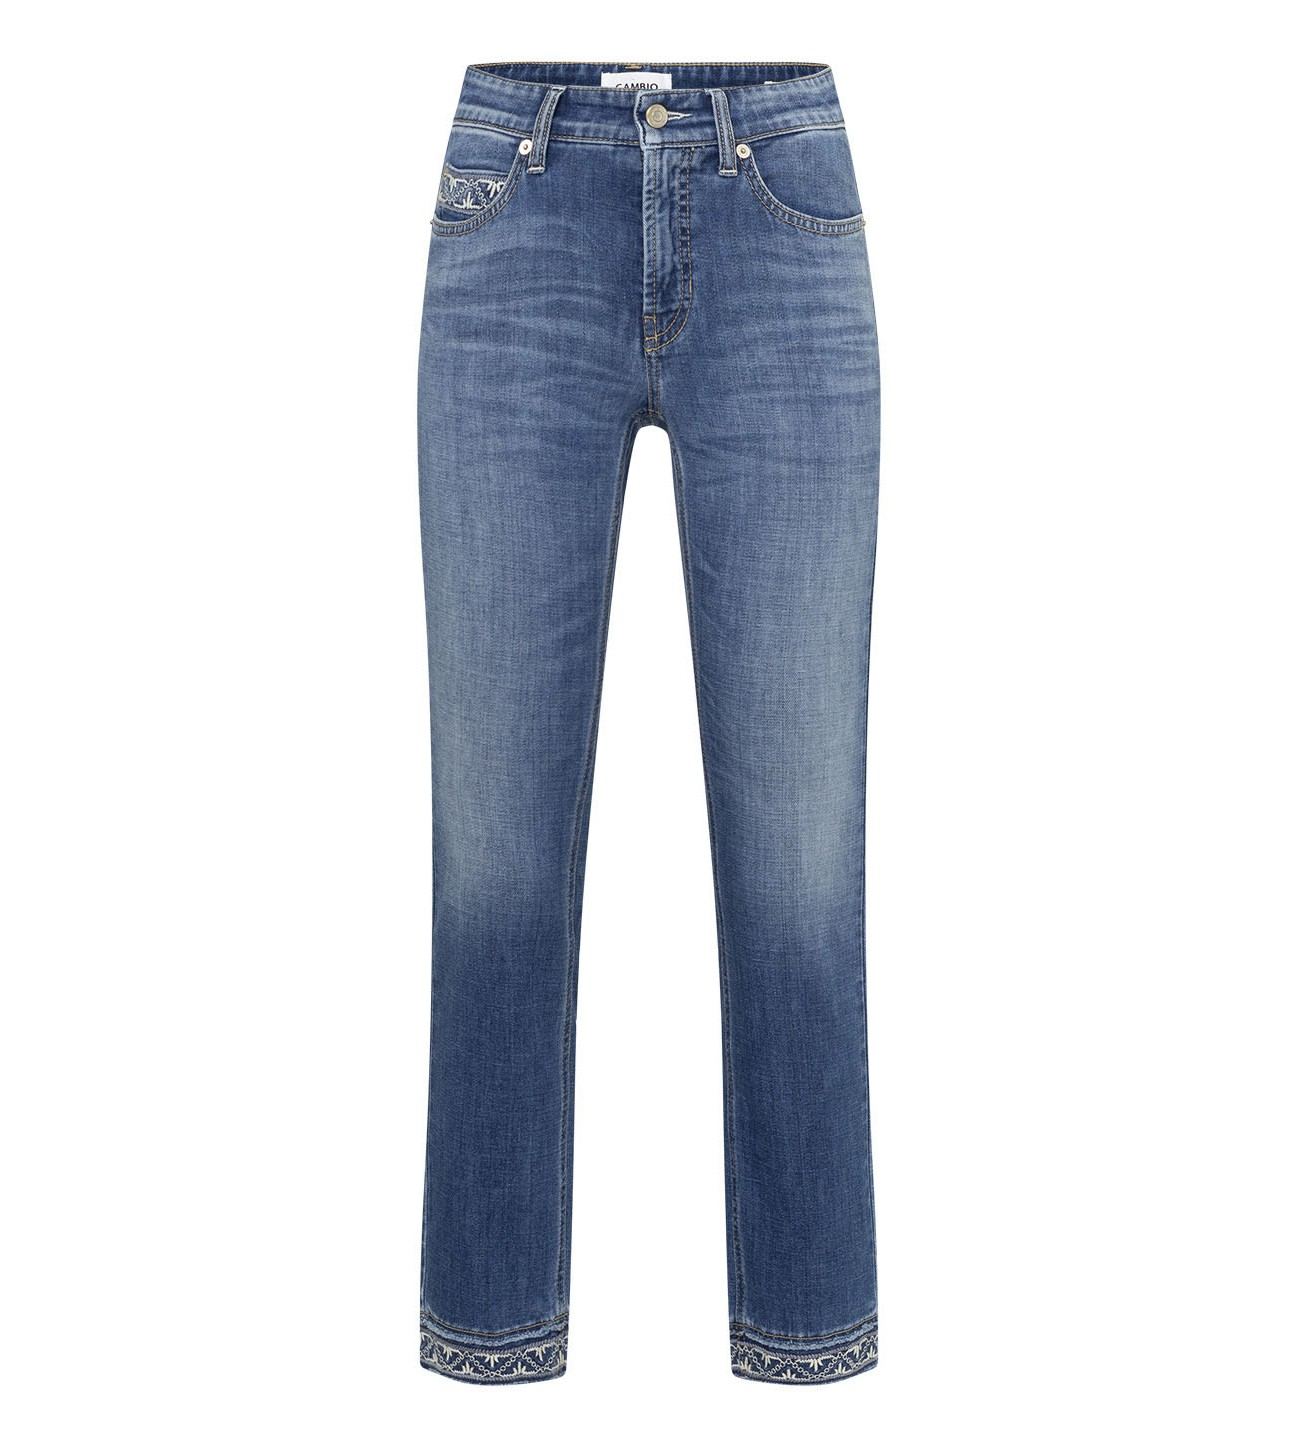 CAMBIO_SKNINNY_JEANS_WITH_TRIMMING_AT_CUFFS_MARIONA_FASHION_CLOTHING_WOMAN_SHOP_ONLINE_0059/11